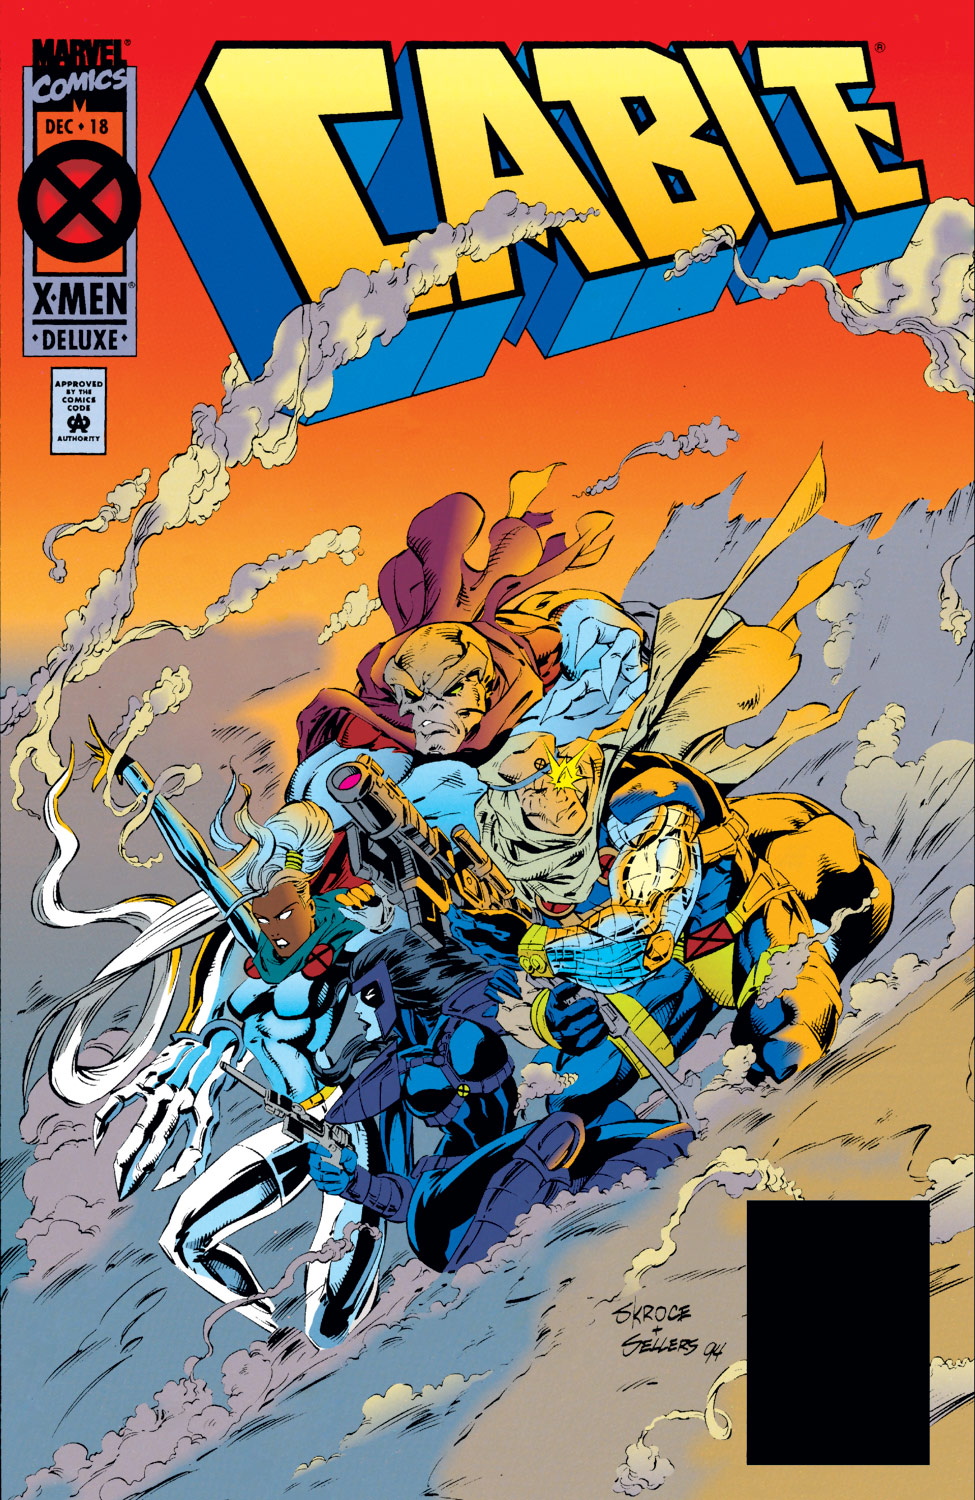 Cable (1993) #18